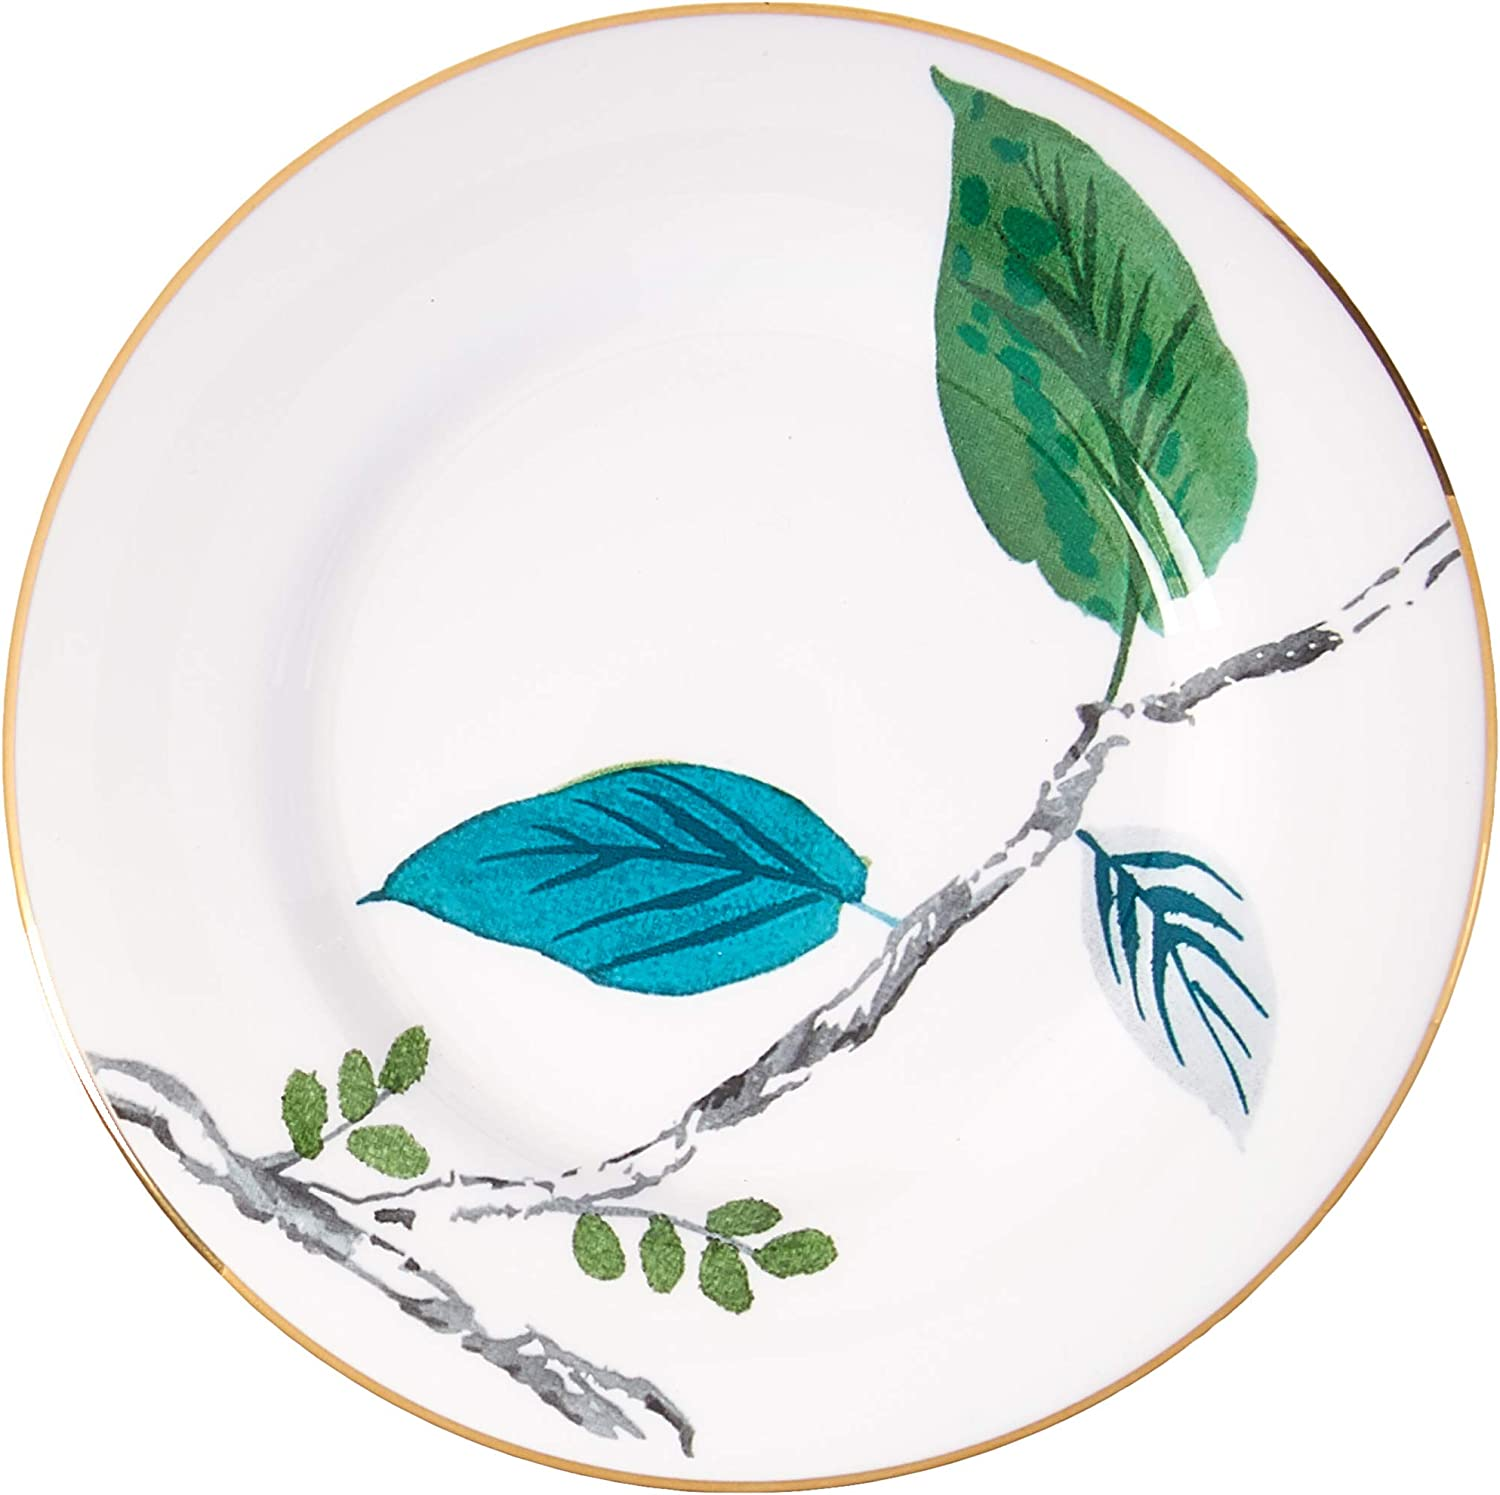 Kate Spade Birch Fixed price for Selling rankings sale Way 0.40 Saucer Multi LB